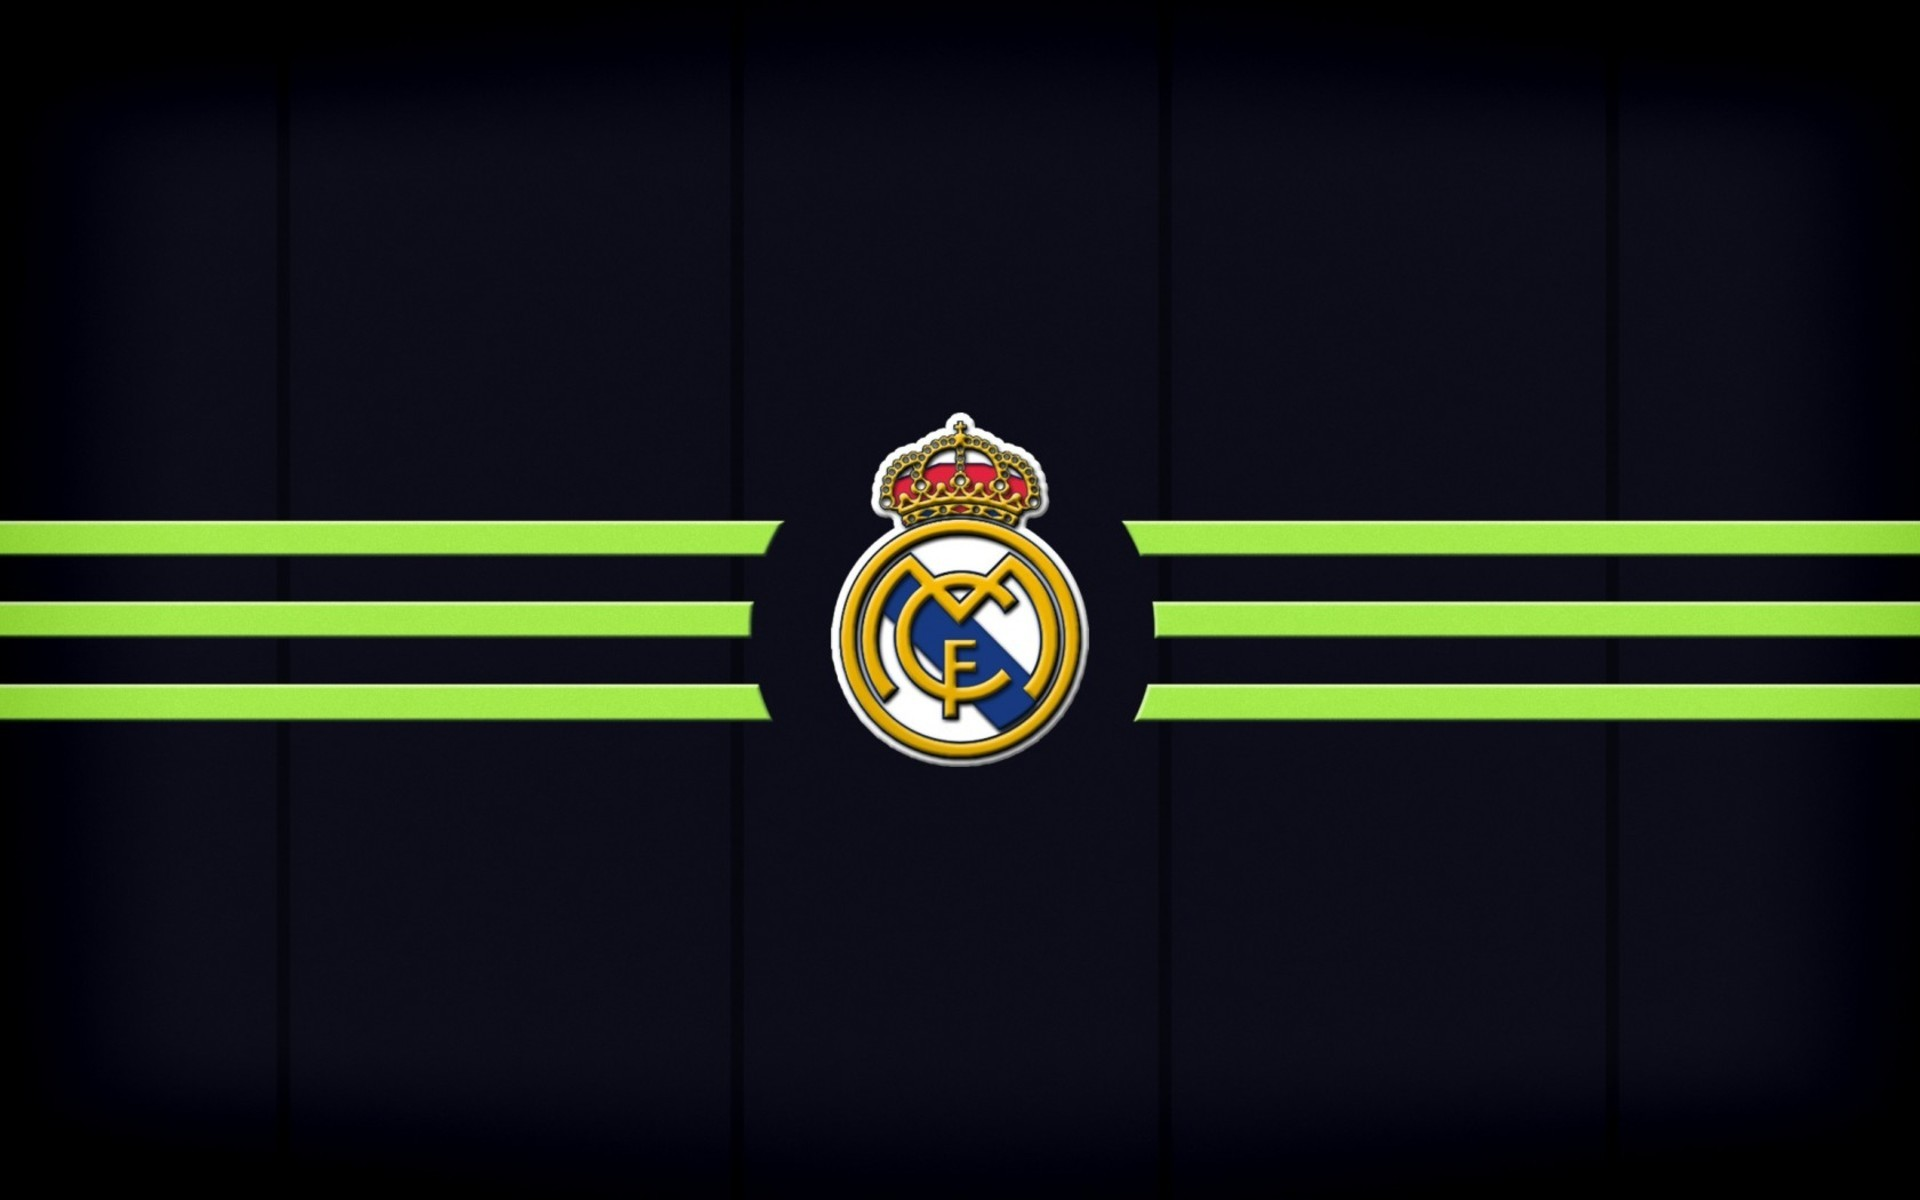 Cr7 Logo Wallpapers Posted By John Anderson